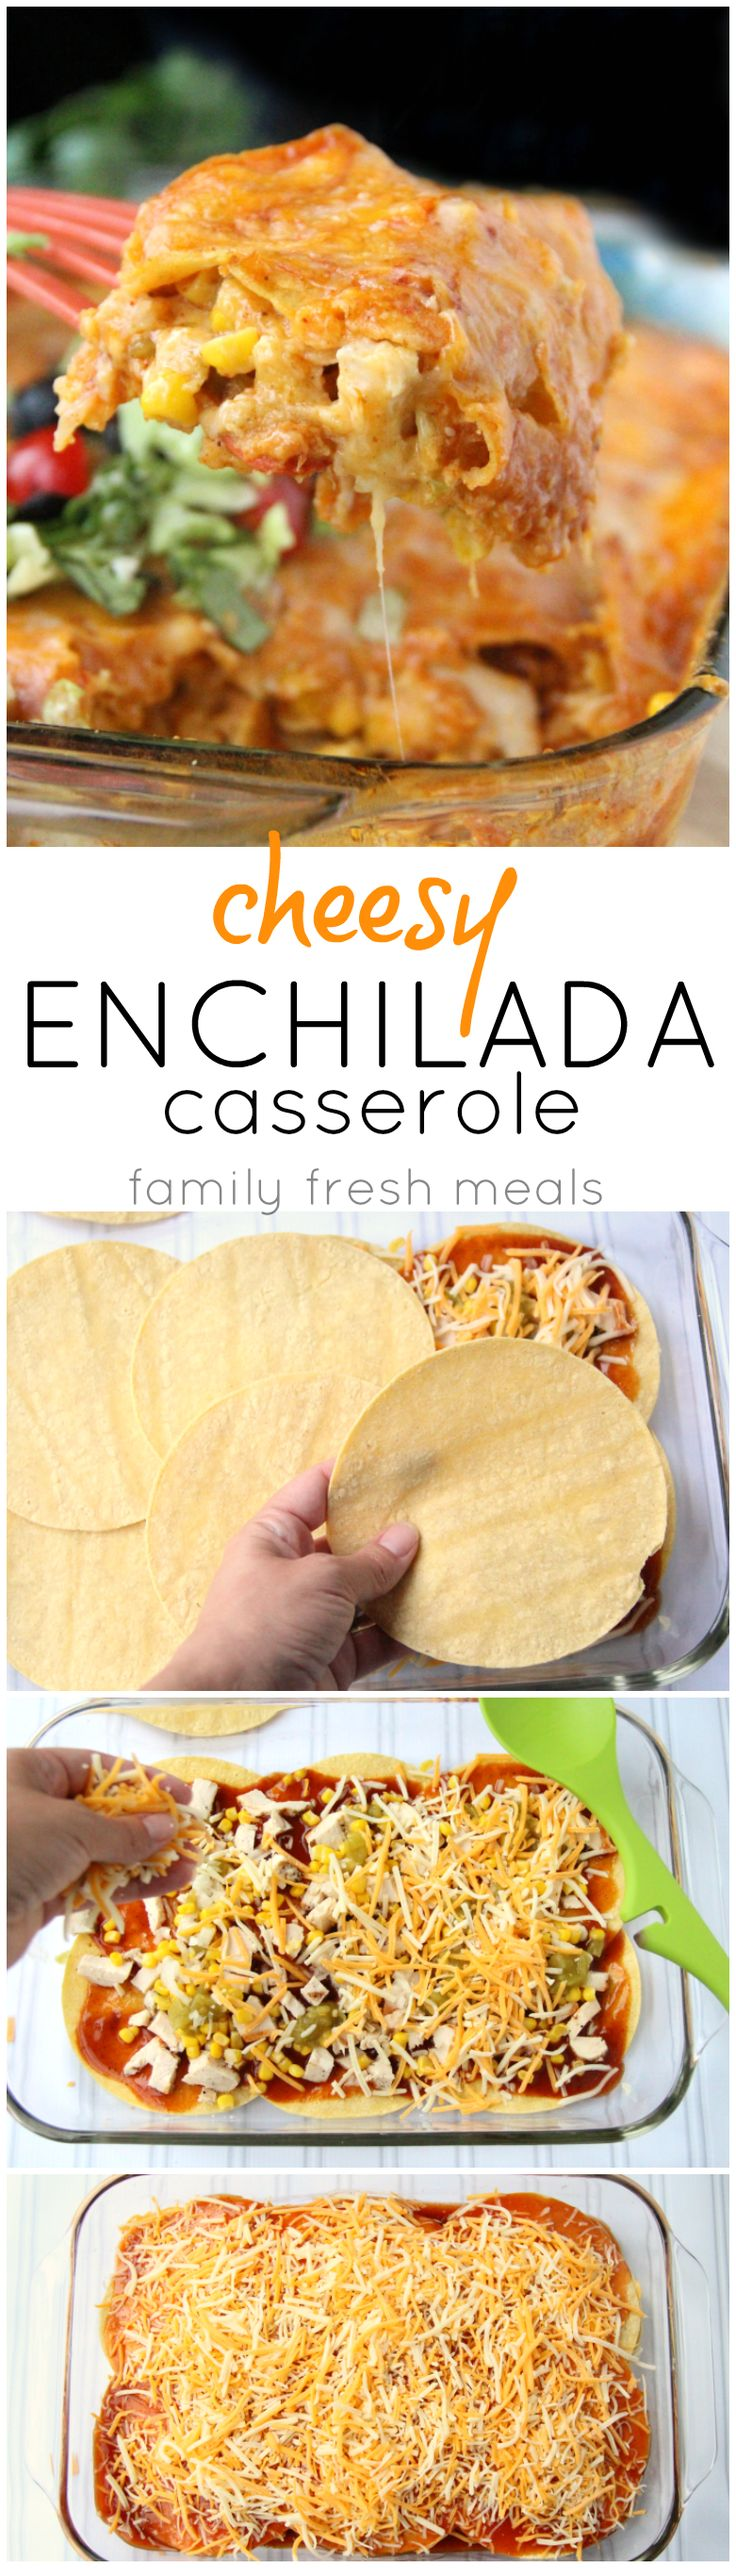 fashion jewelry stores online Dinner will be ready in  minutes Cheesy Chicken Enchilada Casserole Recipe